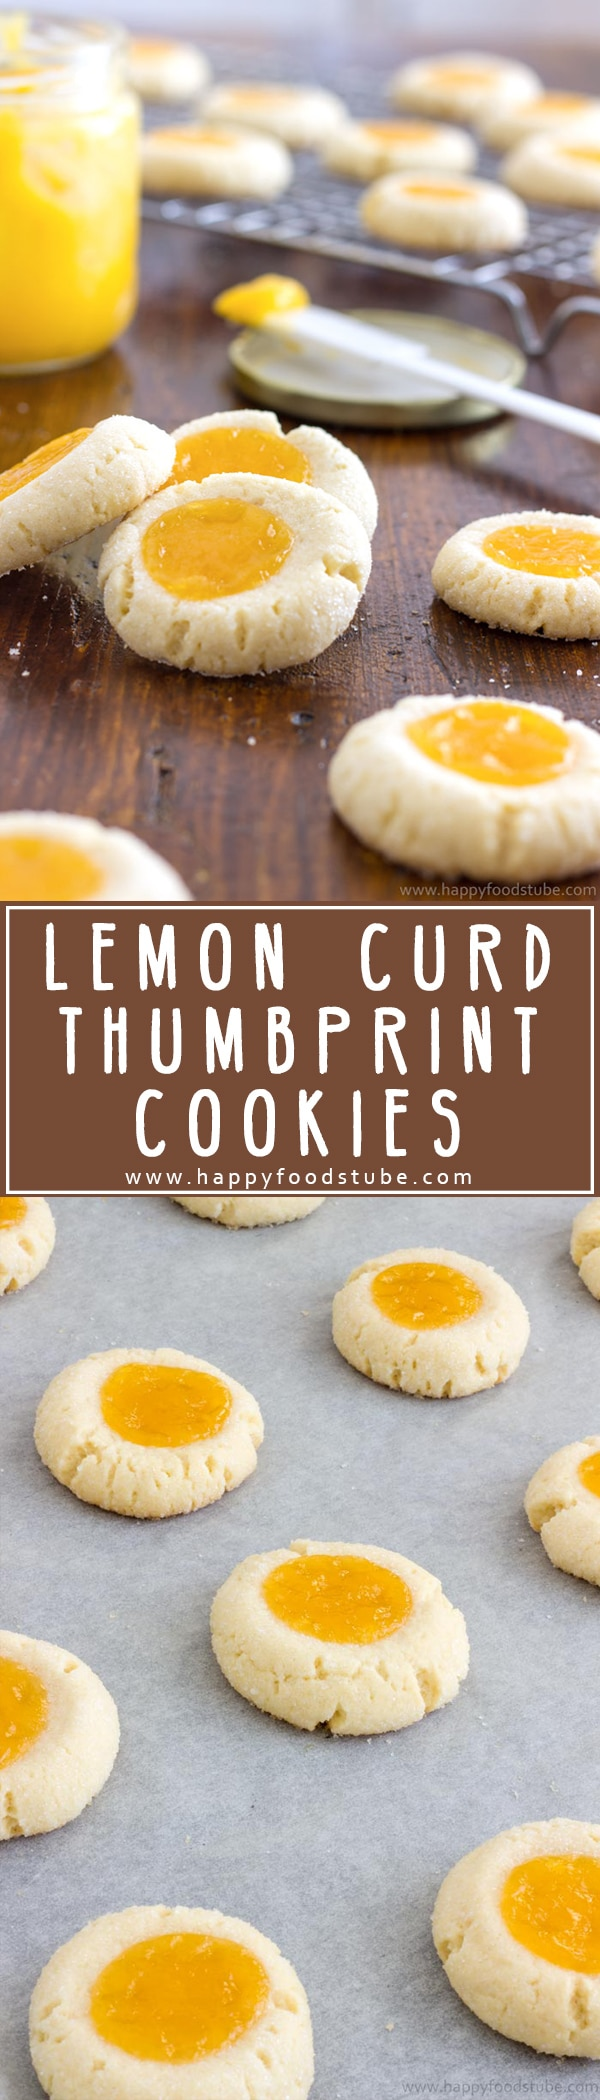 Homemade Lemon Curd Thumbprint Cookies are pure perfection. A combination of sweet buttery cookies and citrusy topping with a hint of almonds